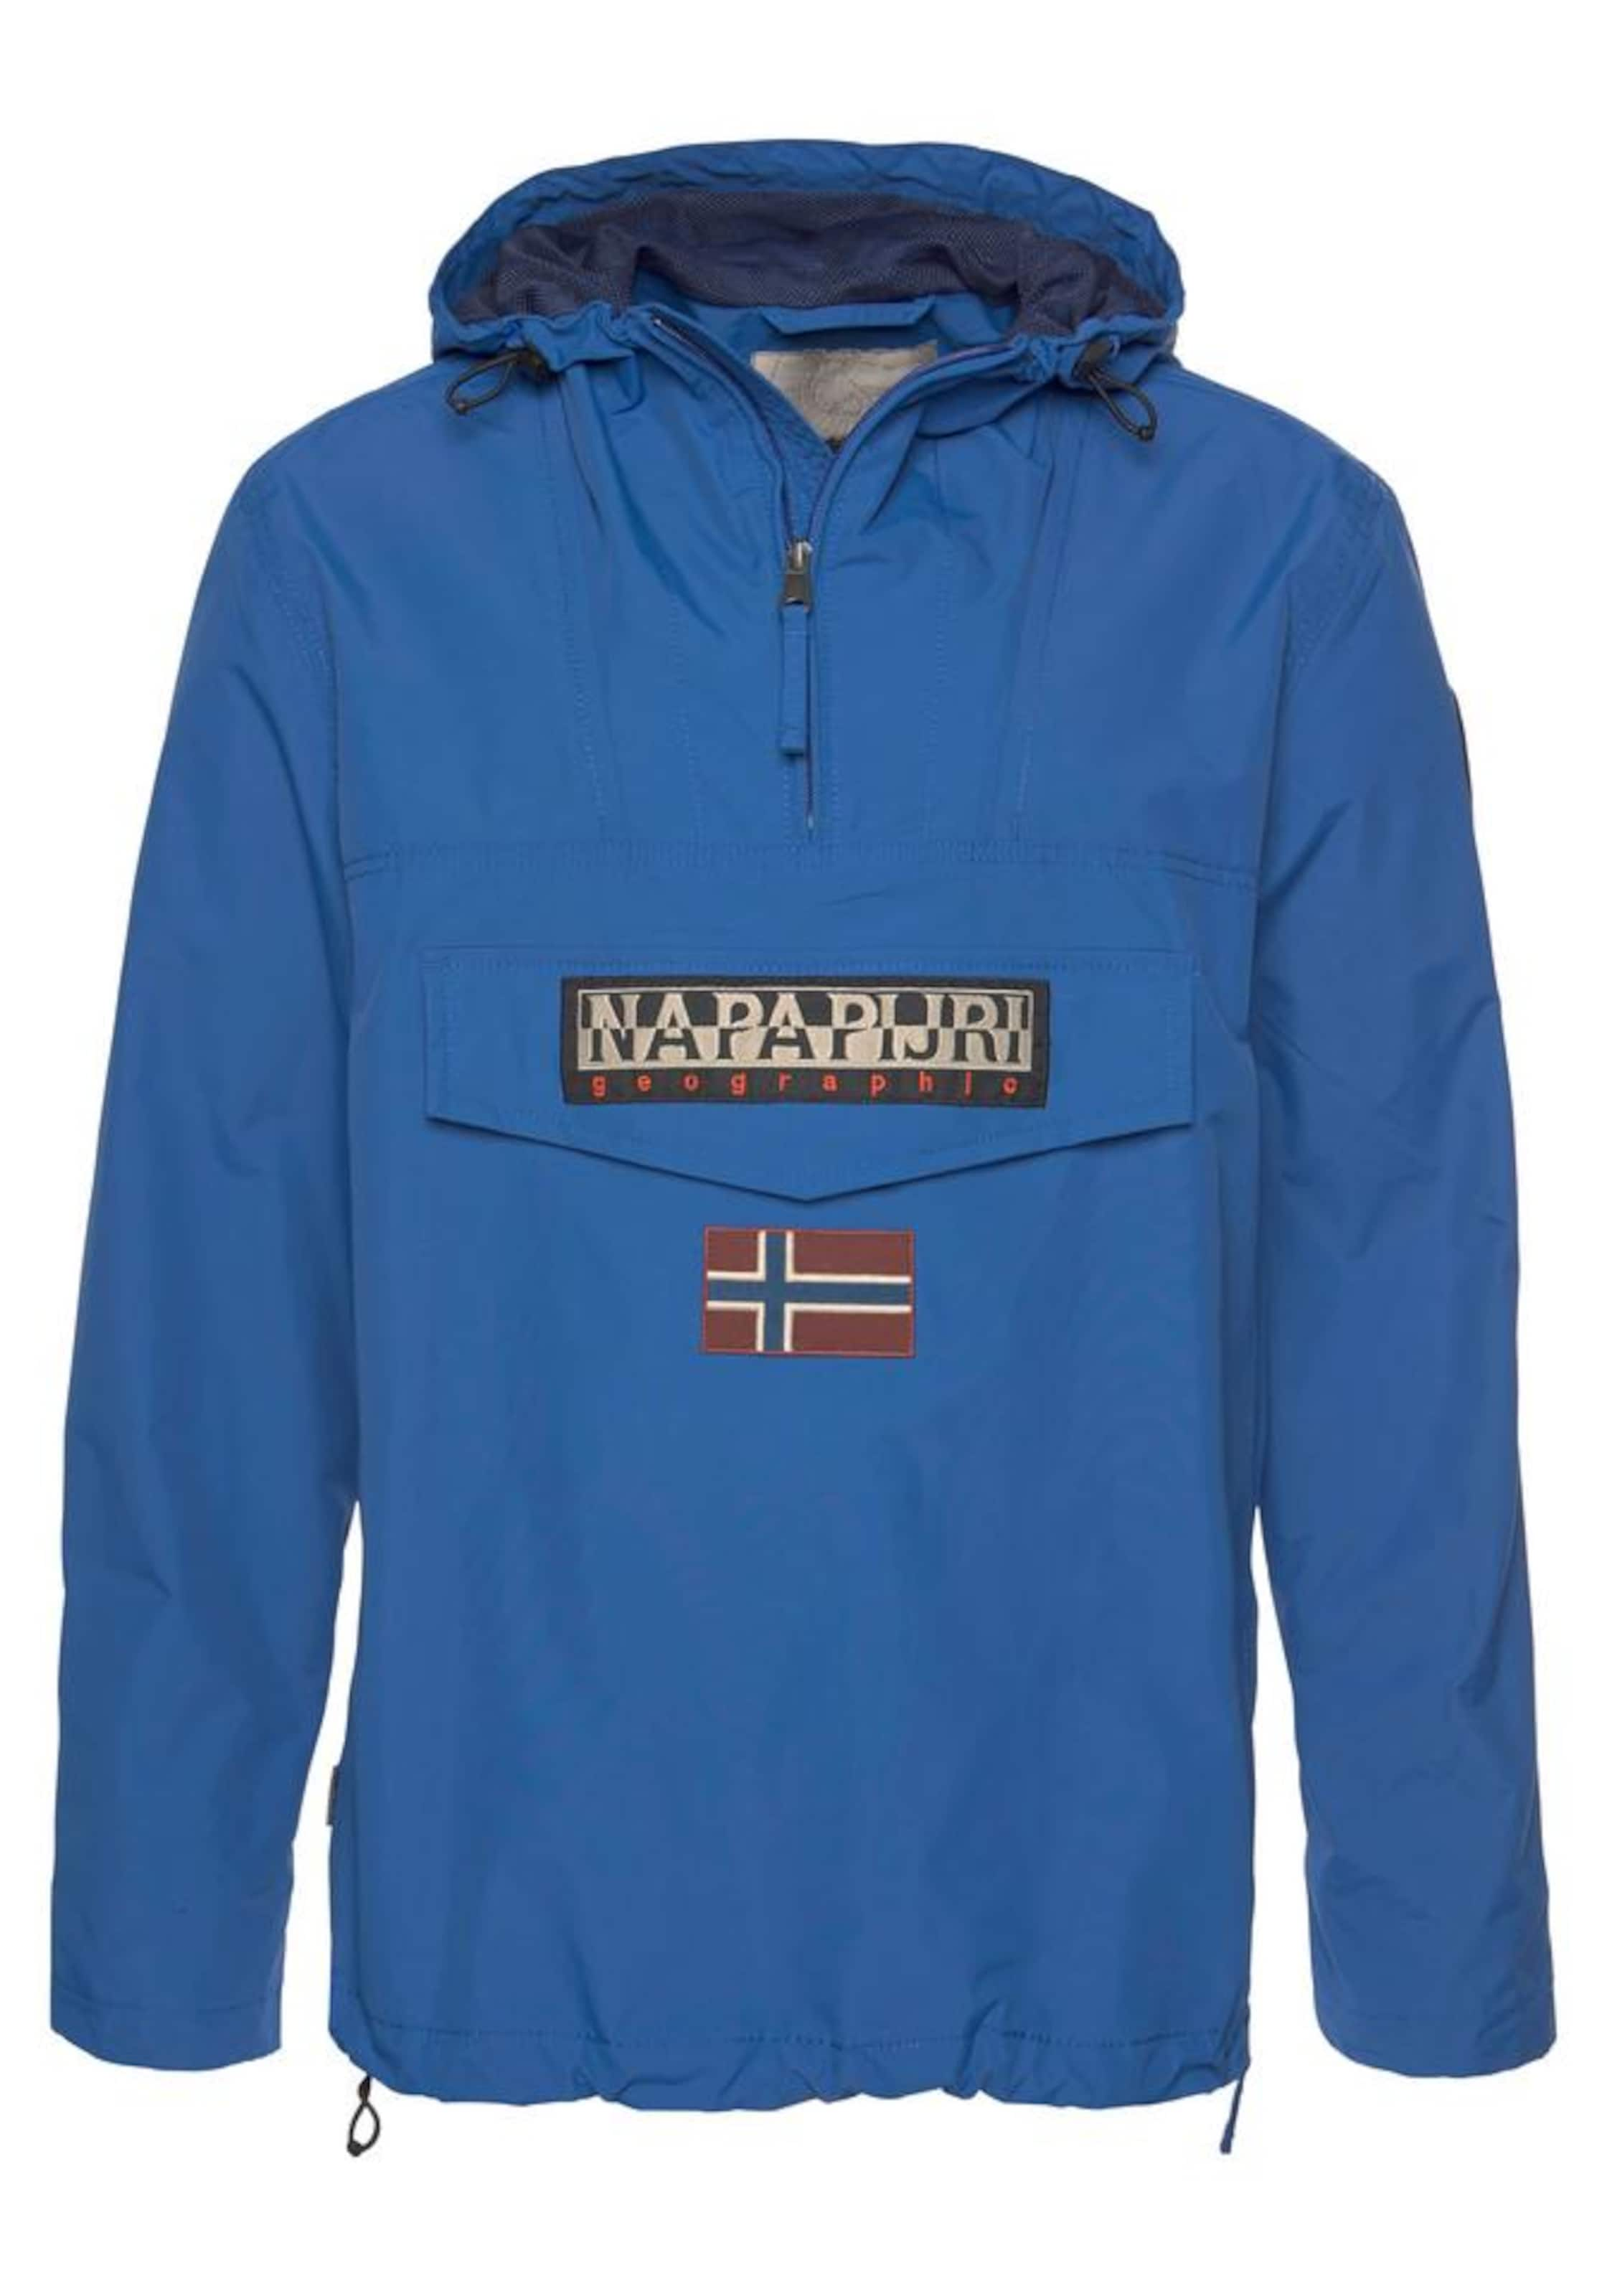 Windbreaker In Napapijri In Blau Windbreaker Napapijri 0PwX8nONkZ